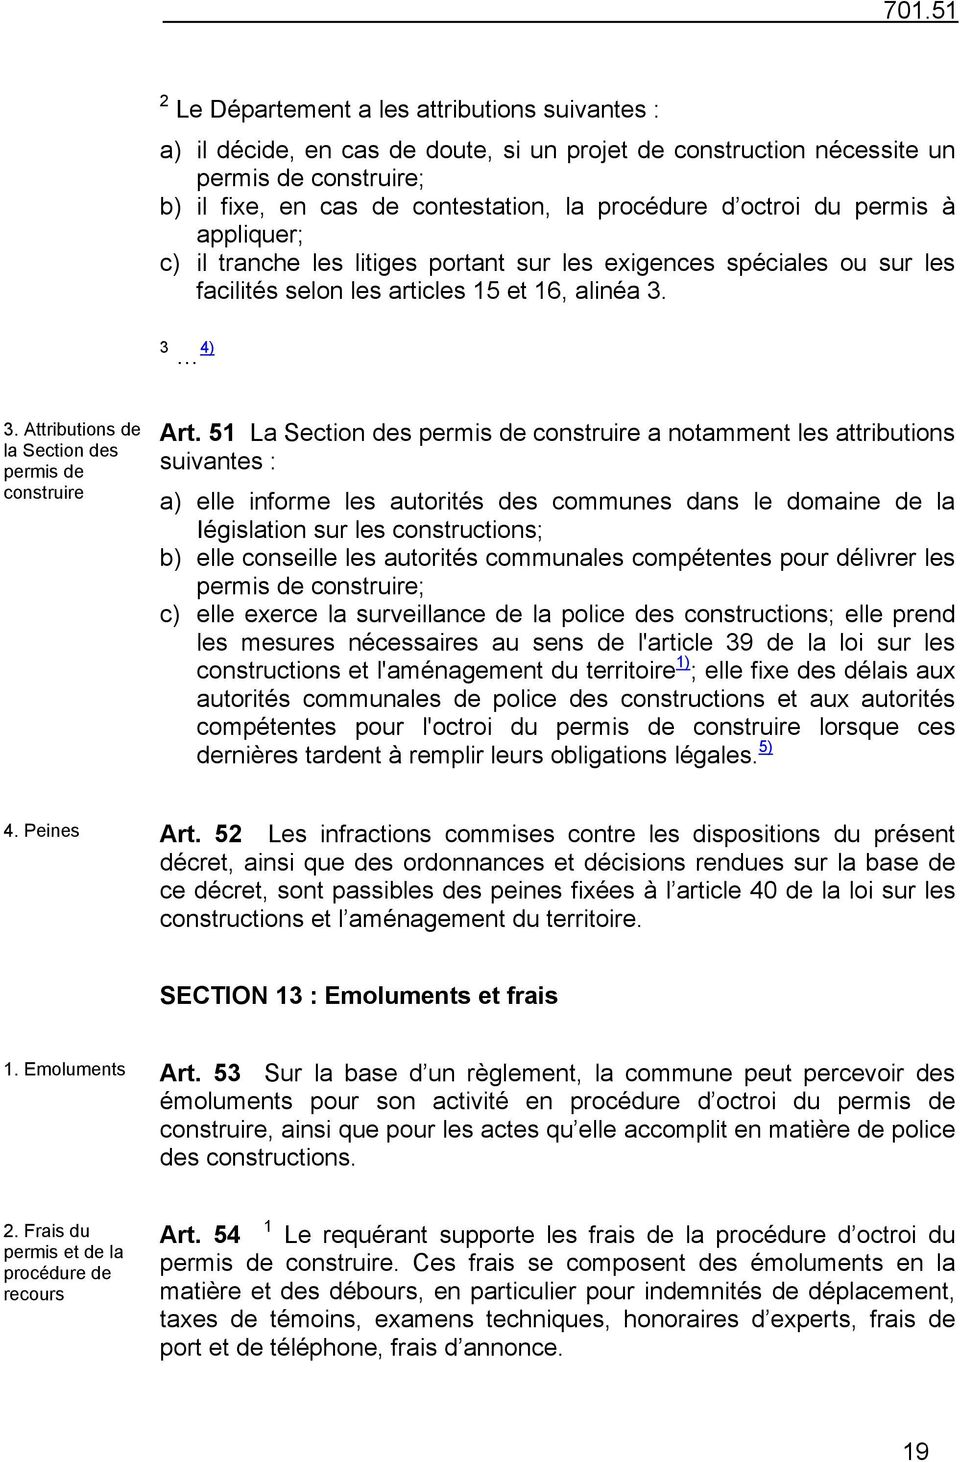 Attributions de la Section des permis de construire Art.